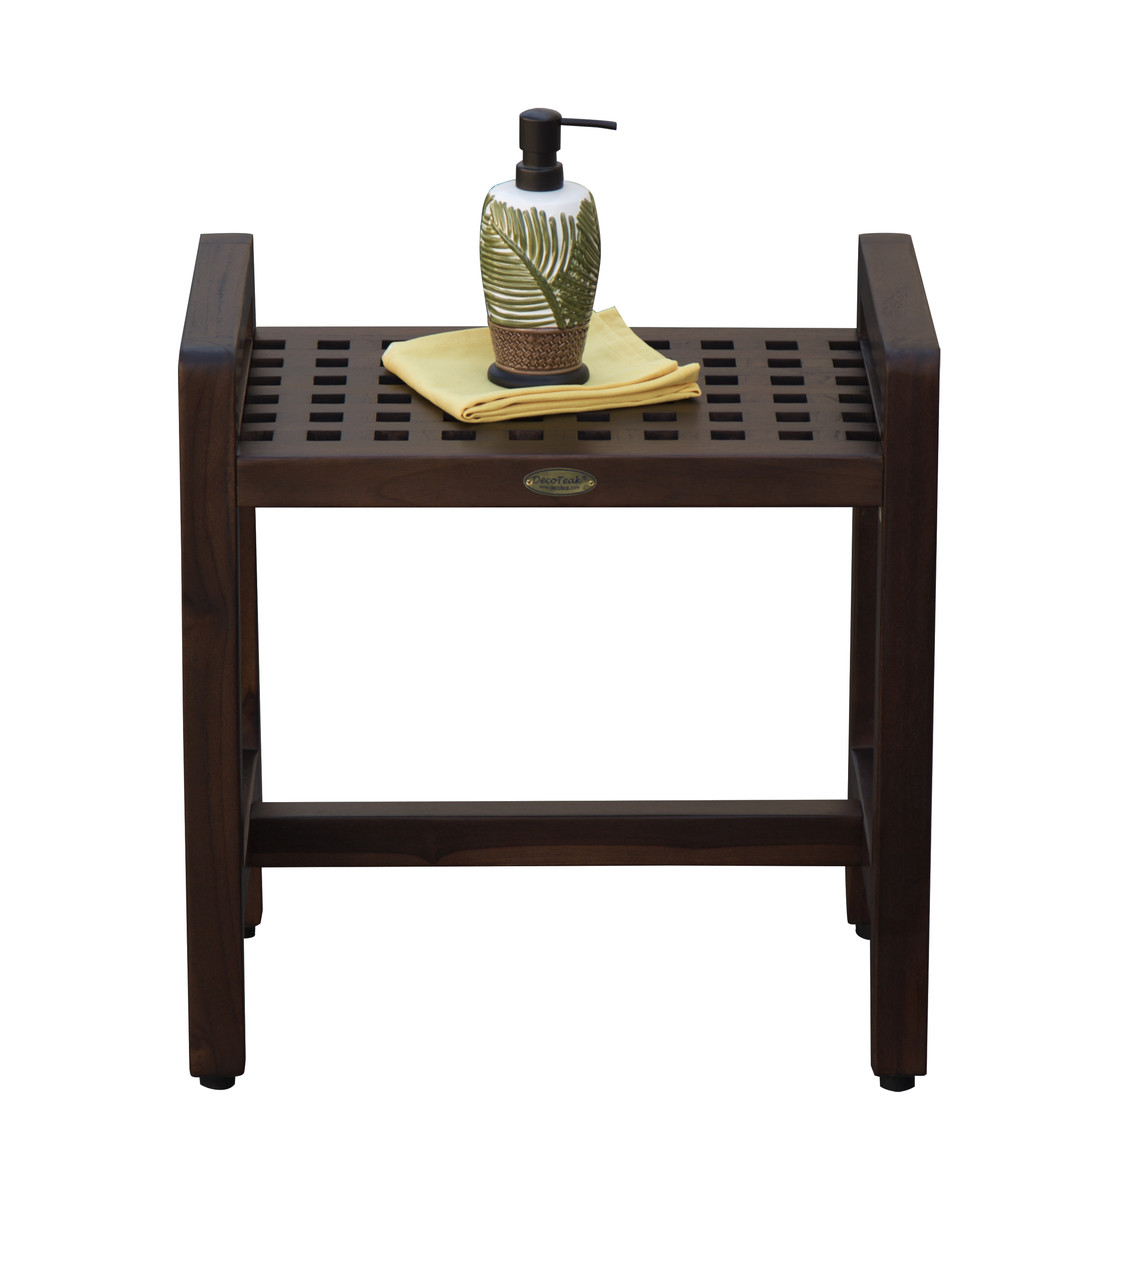 """DecoTeak Espalier 20"""" Teak Wood Shower Bench with LiftAide Arms in Woodland Brown Finish"""